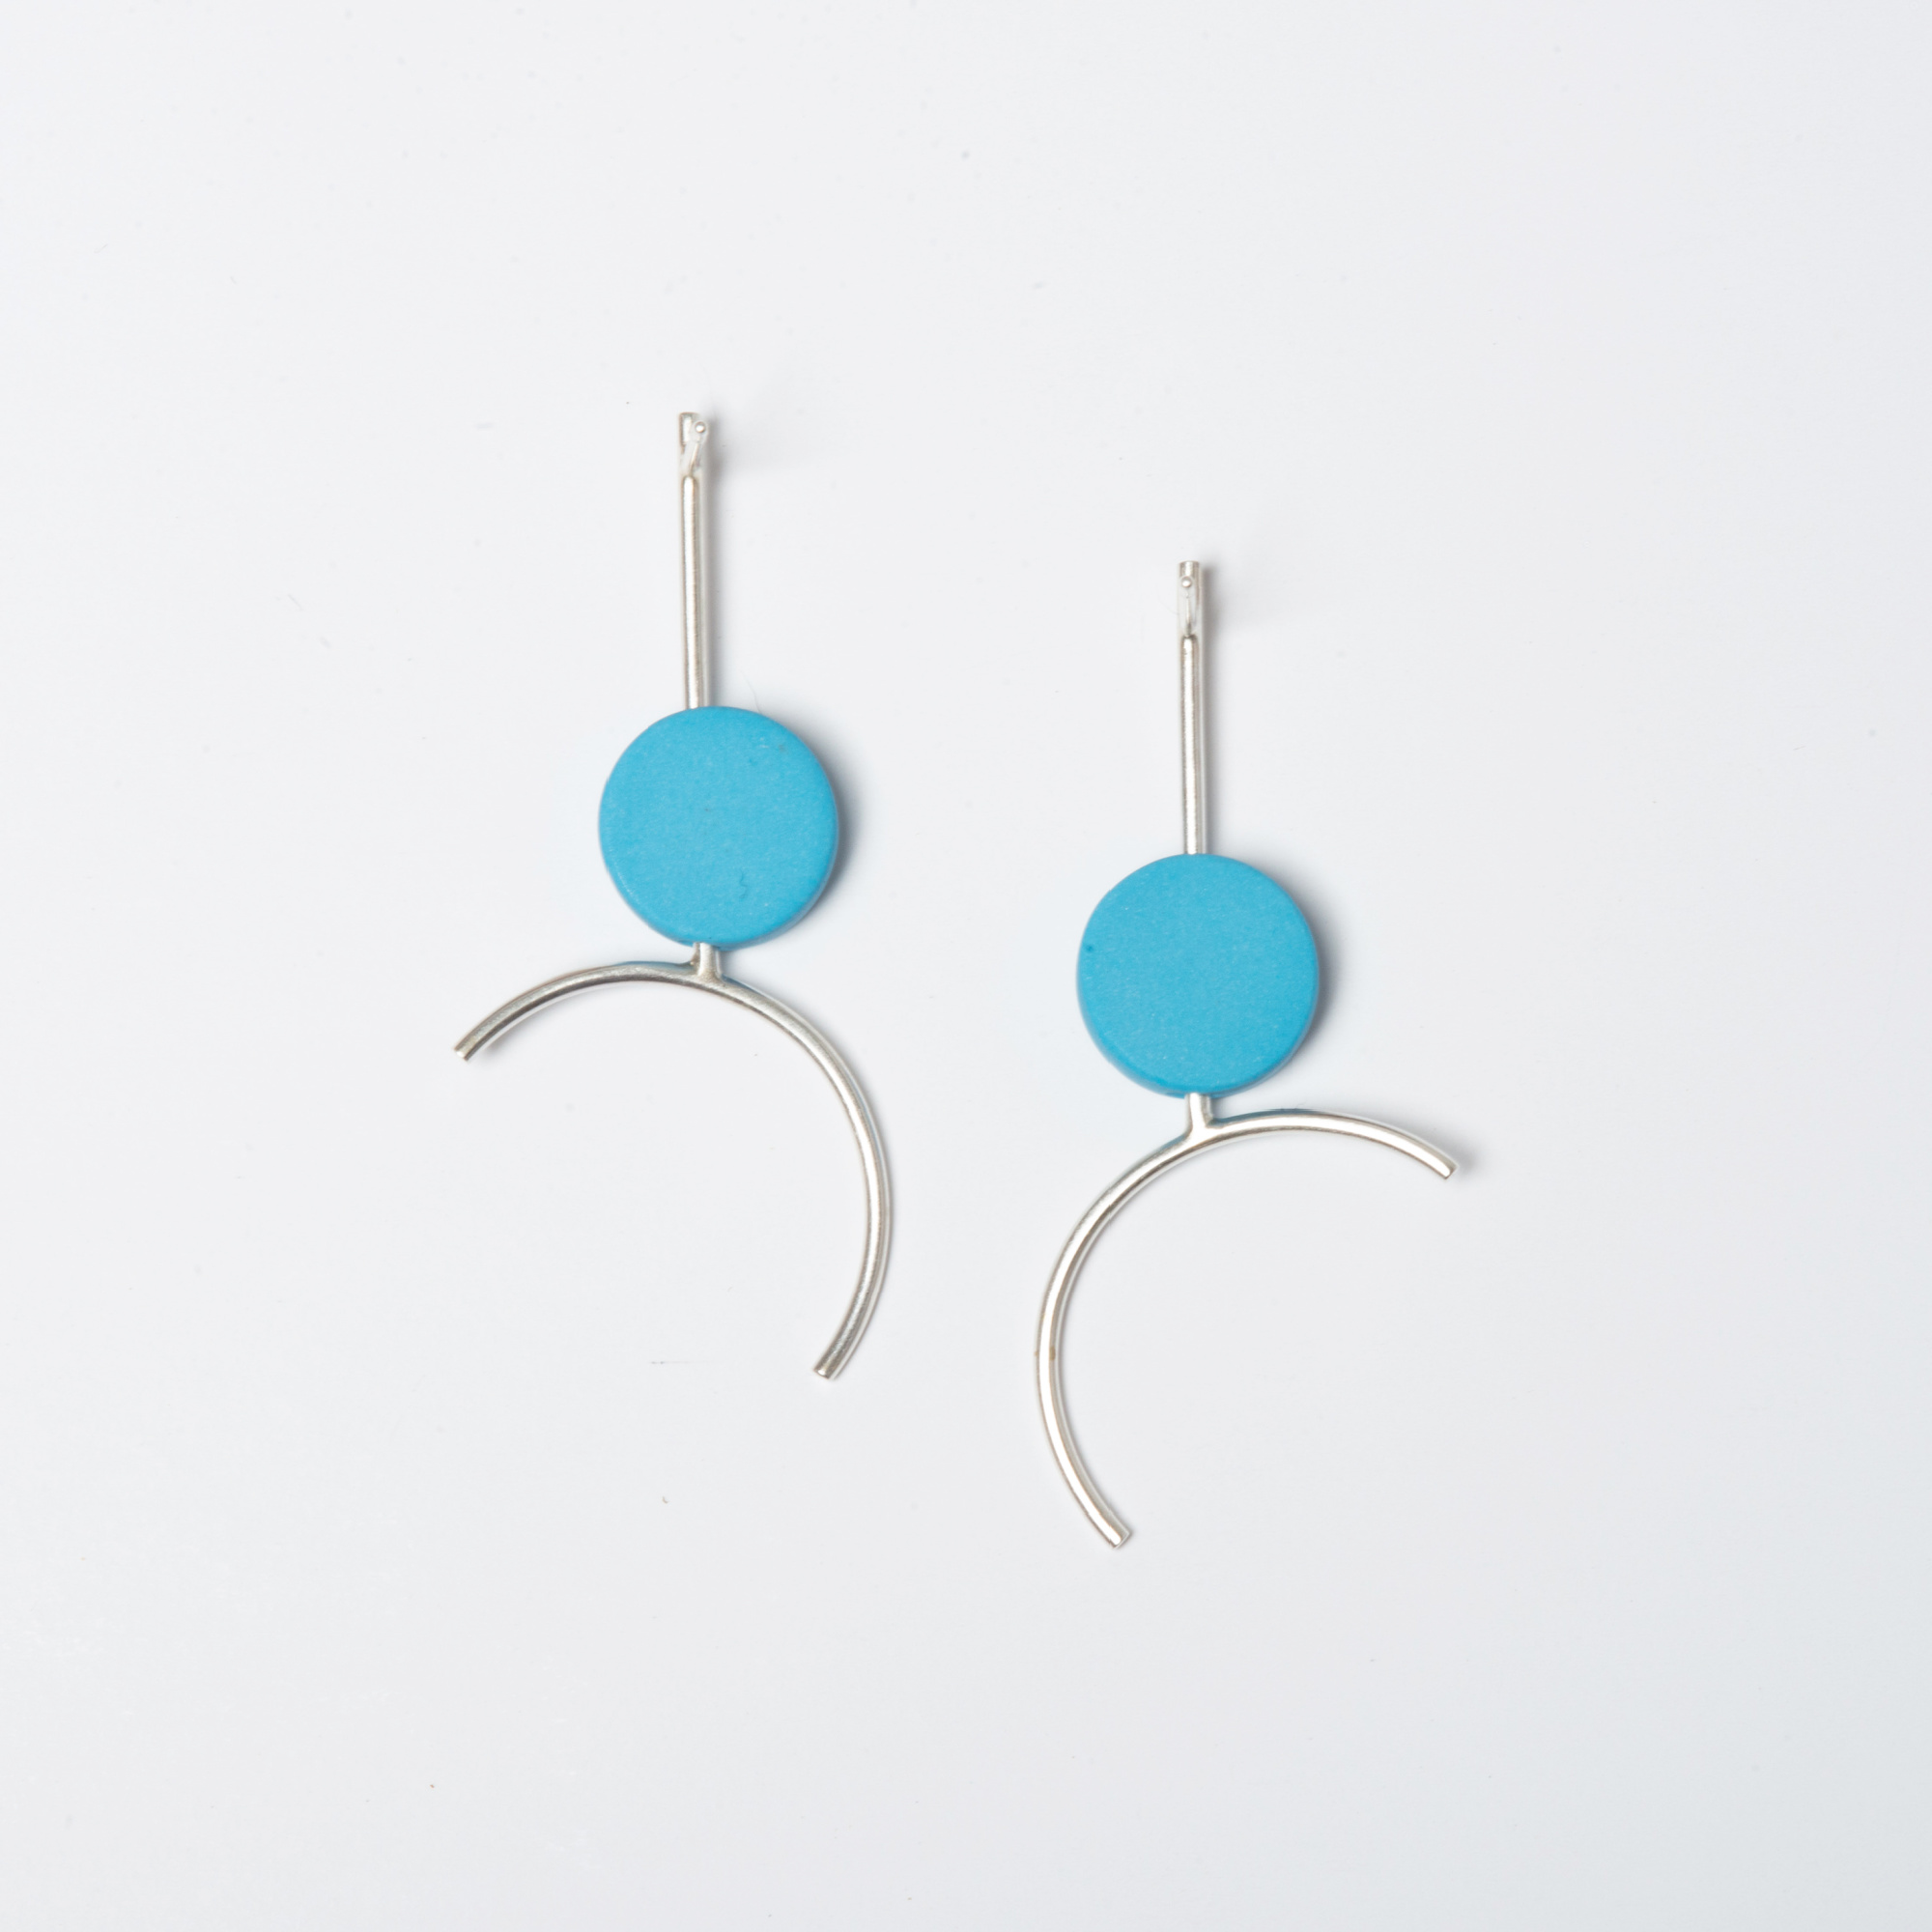 Orbit Earring by Beth Lamont